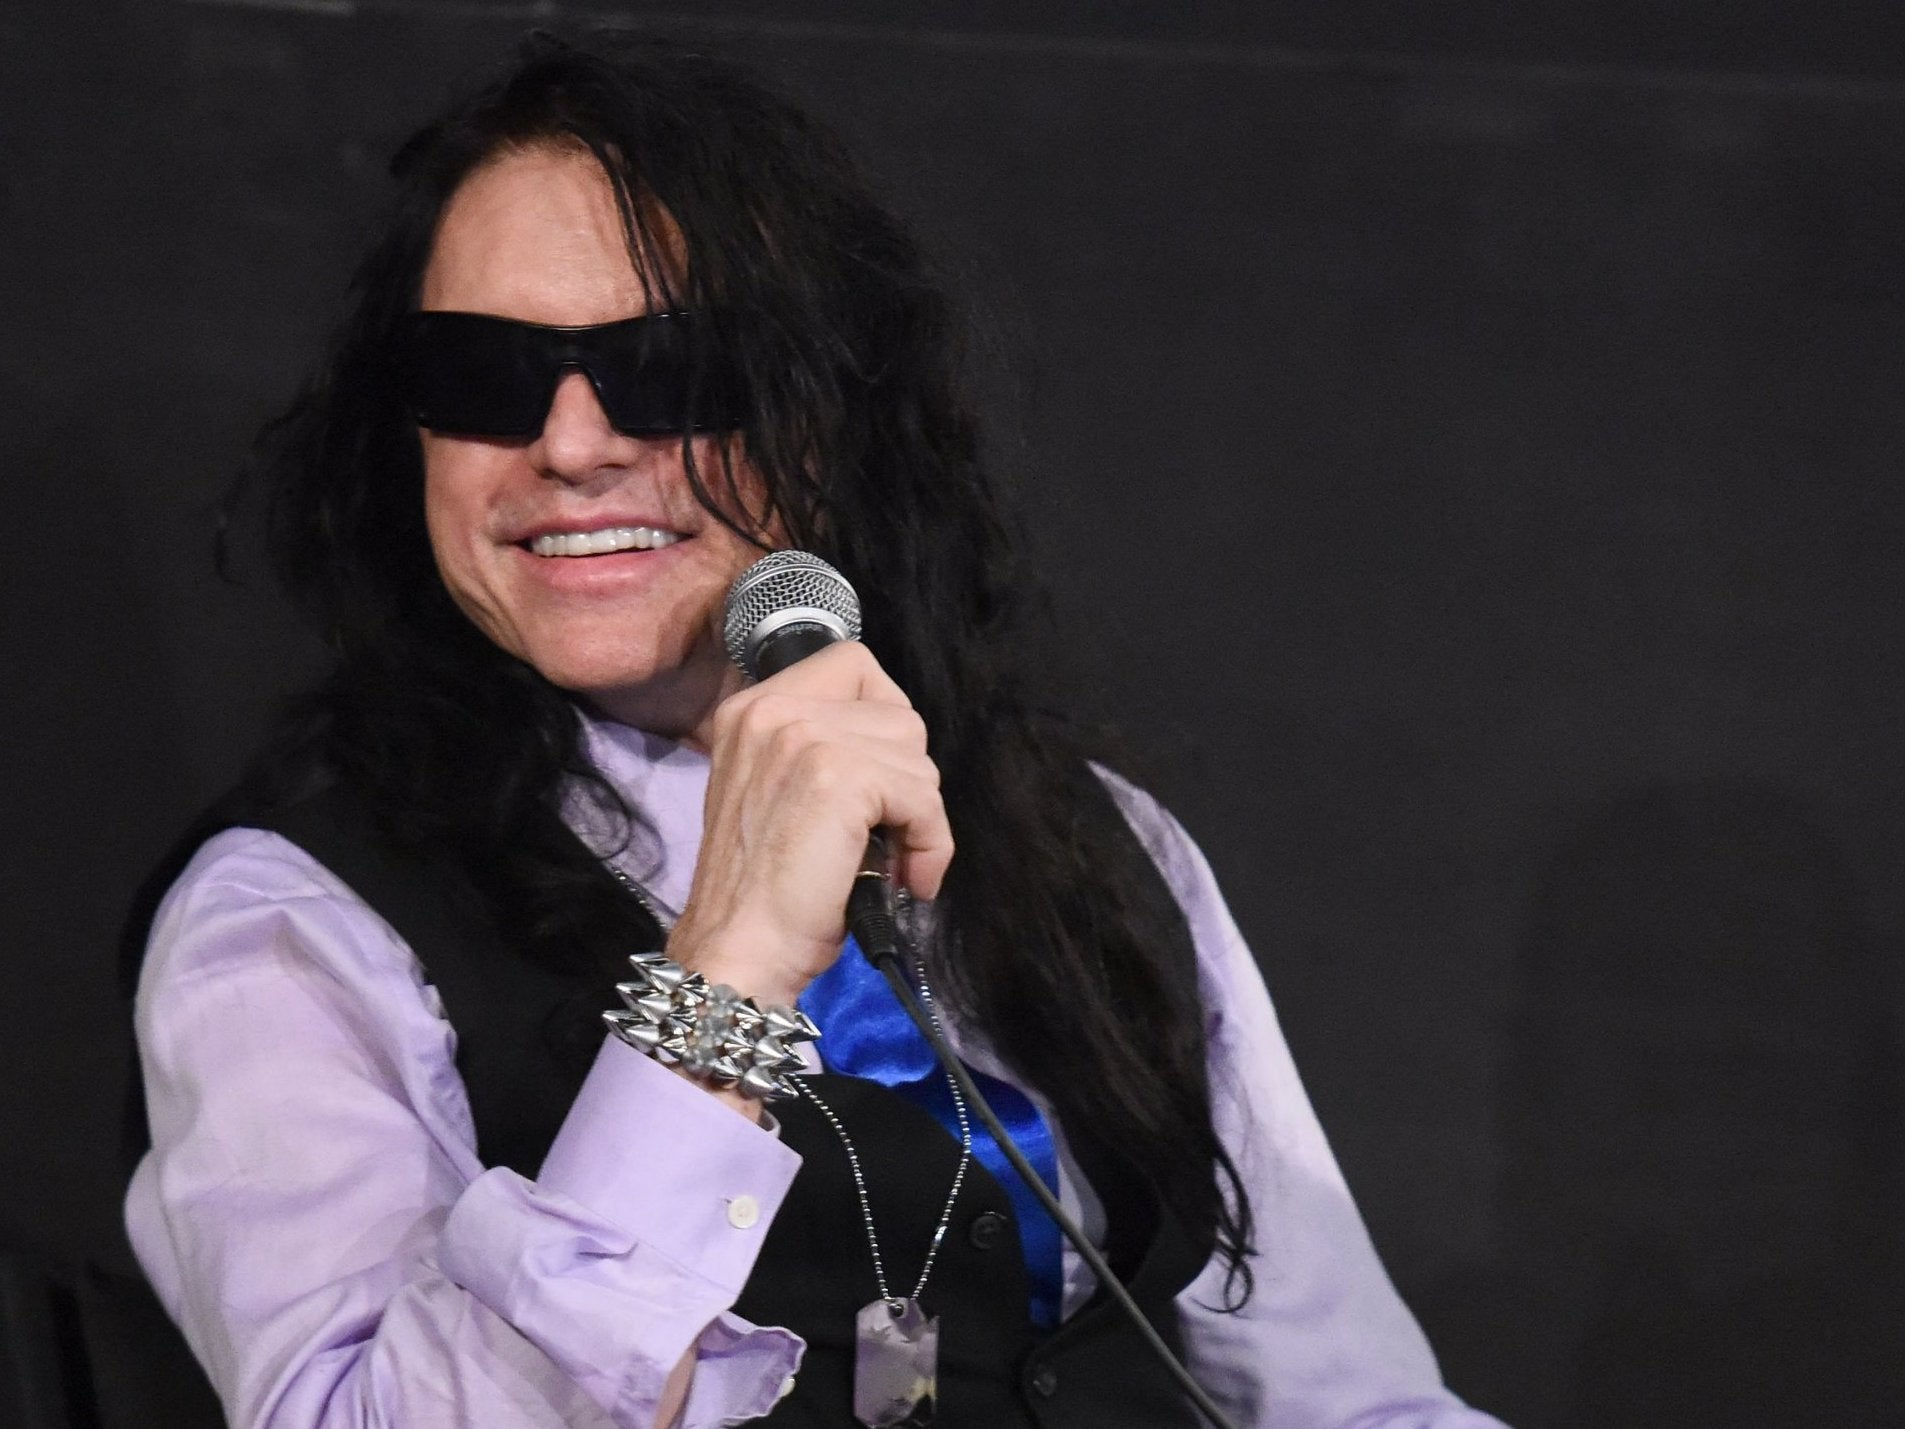 Tommy Wiseau: The Room director is making a film about a killer shark